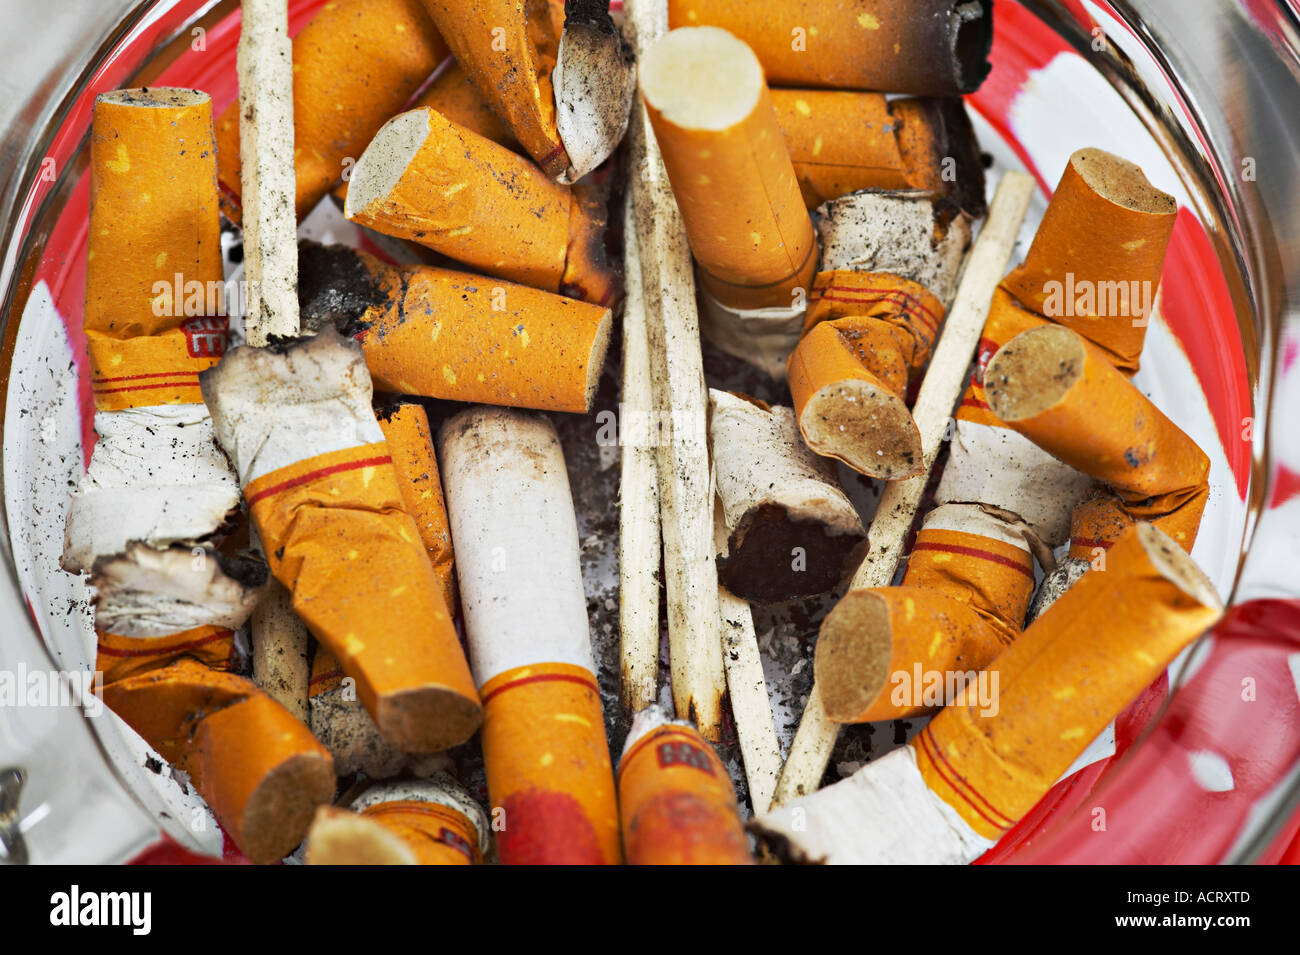 Ashtray filled with cigarette butts and burnt matches - Stock Image